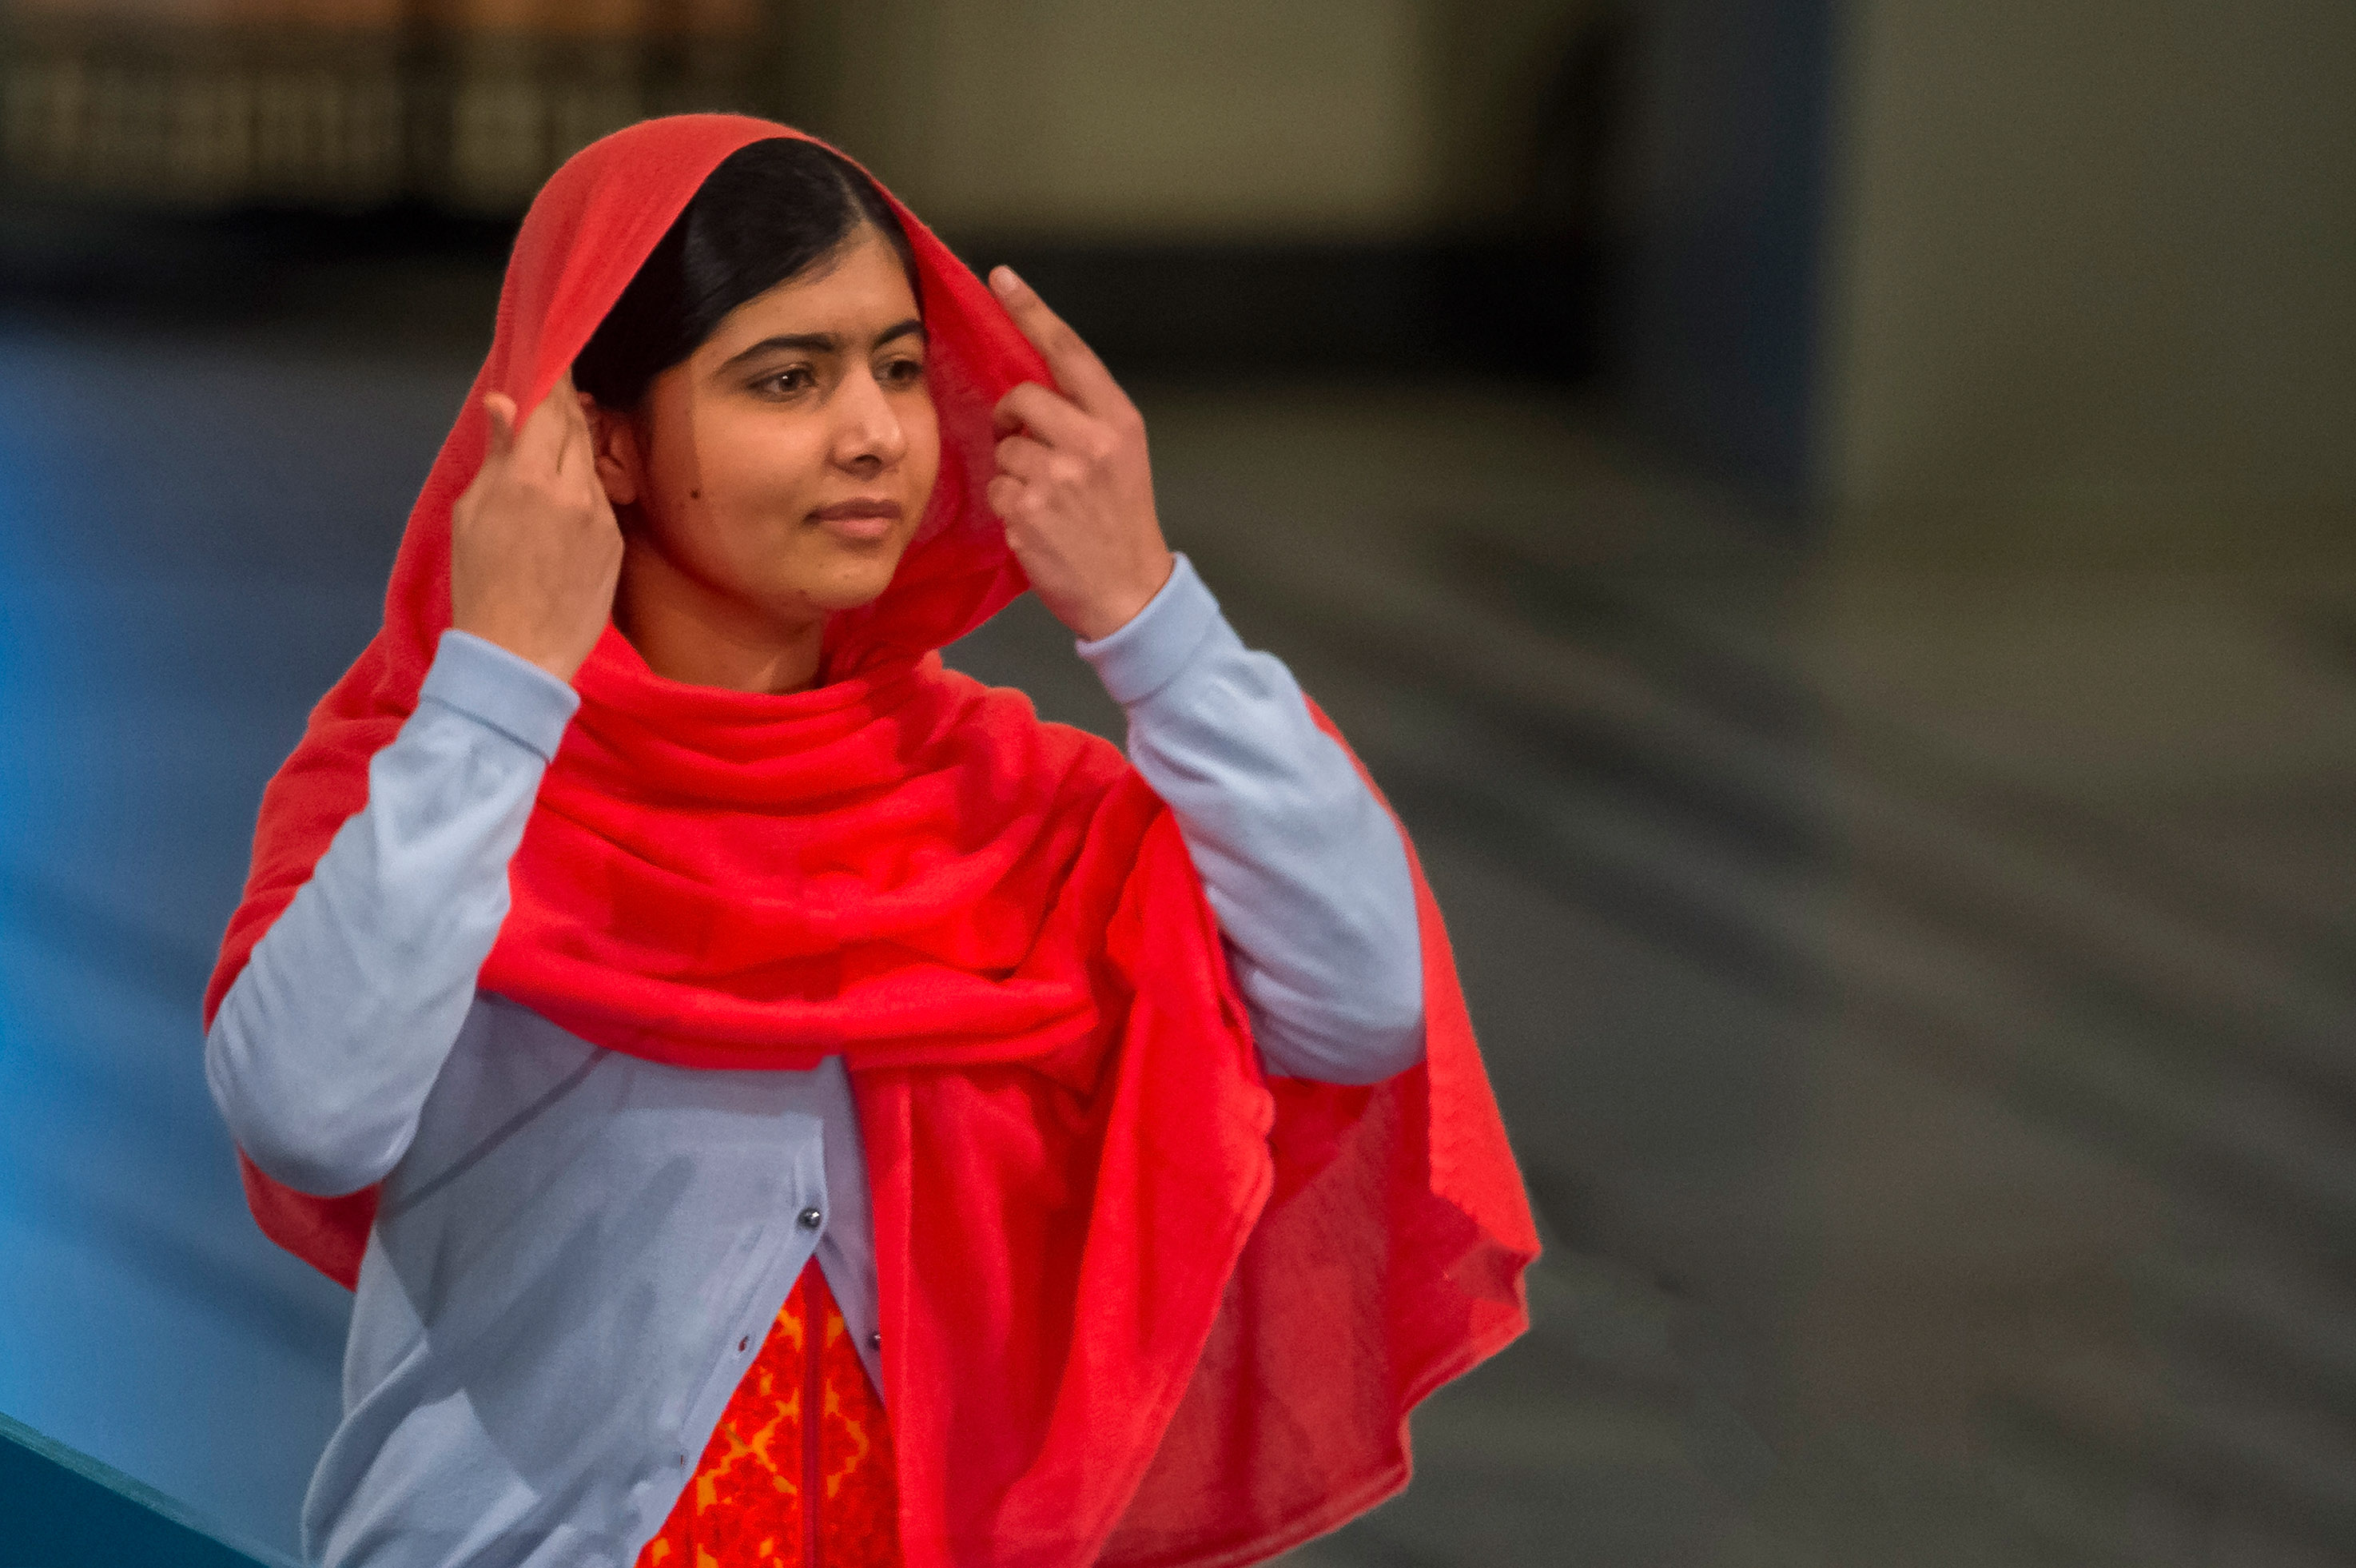 How Malala Yousafzai Is Using Her Blood-Stained School Uniform In One Further Act Of Defiance forecast